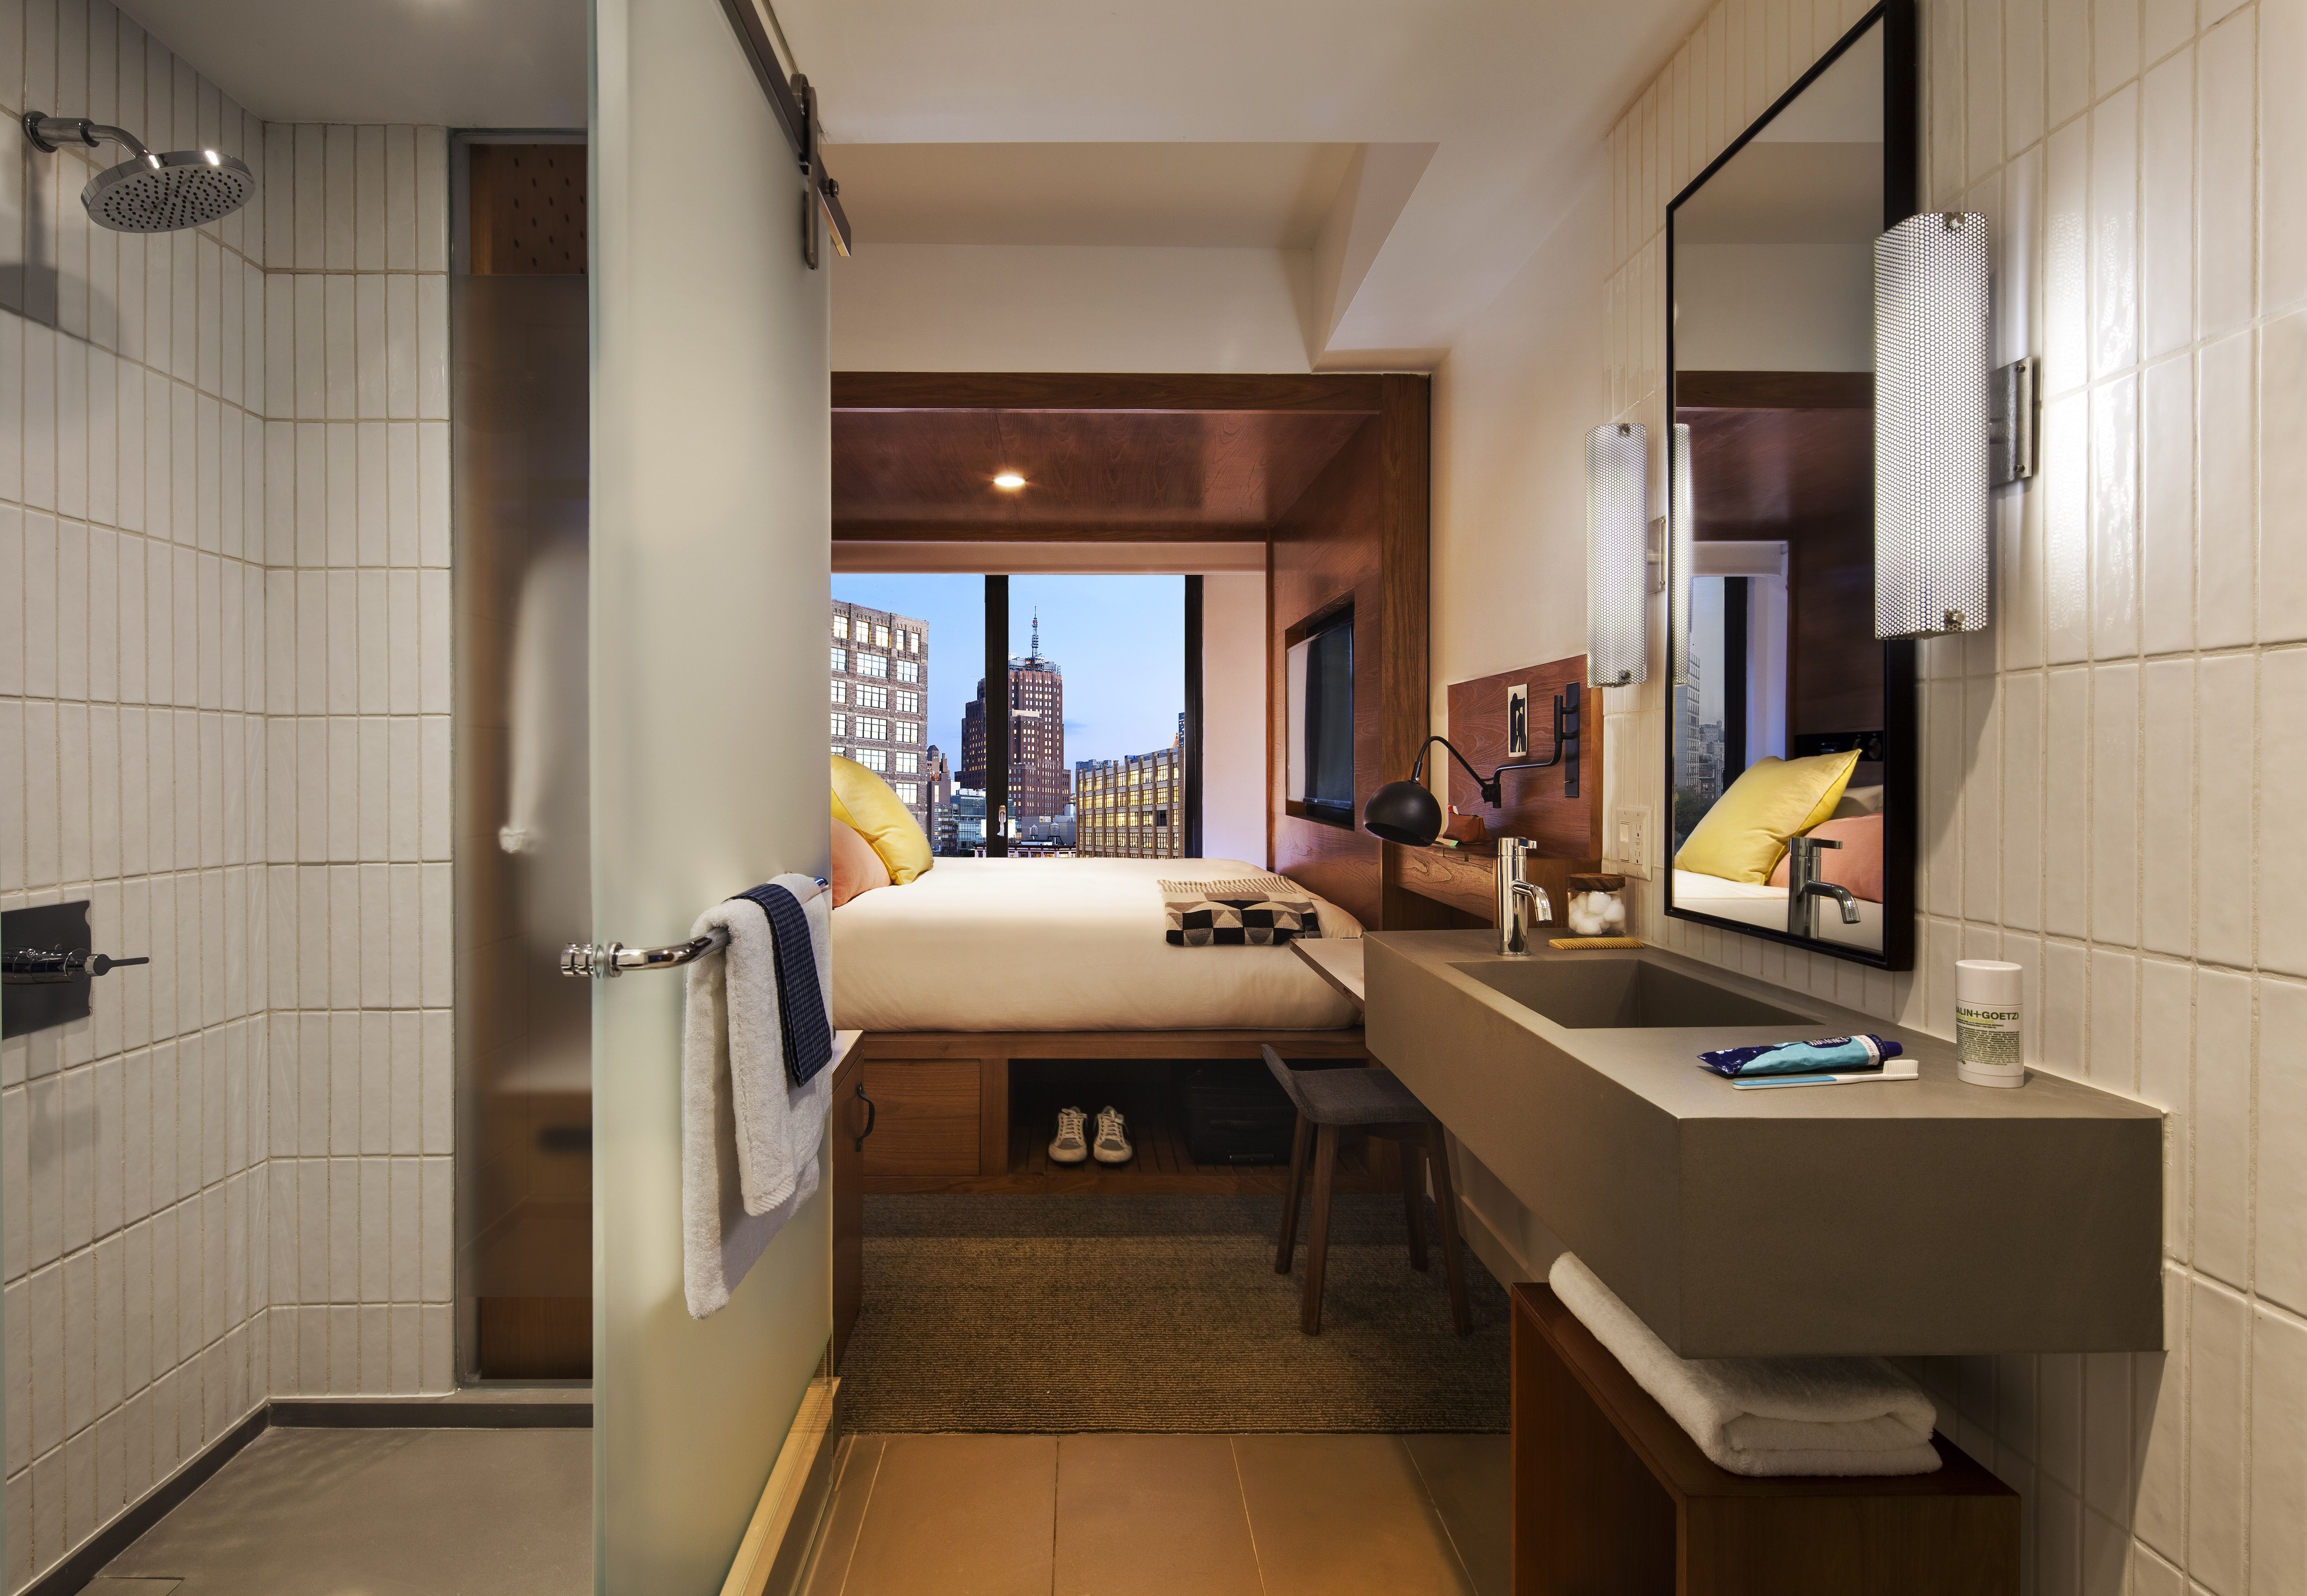 tommie hotel | capsule | pinterest | hotel room design, room and